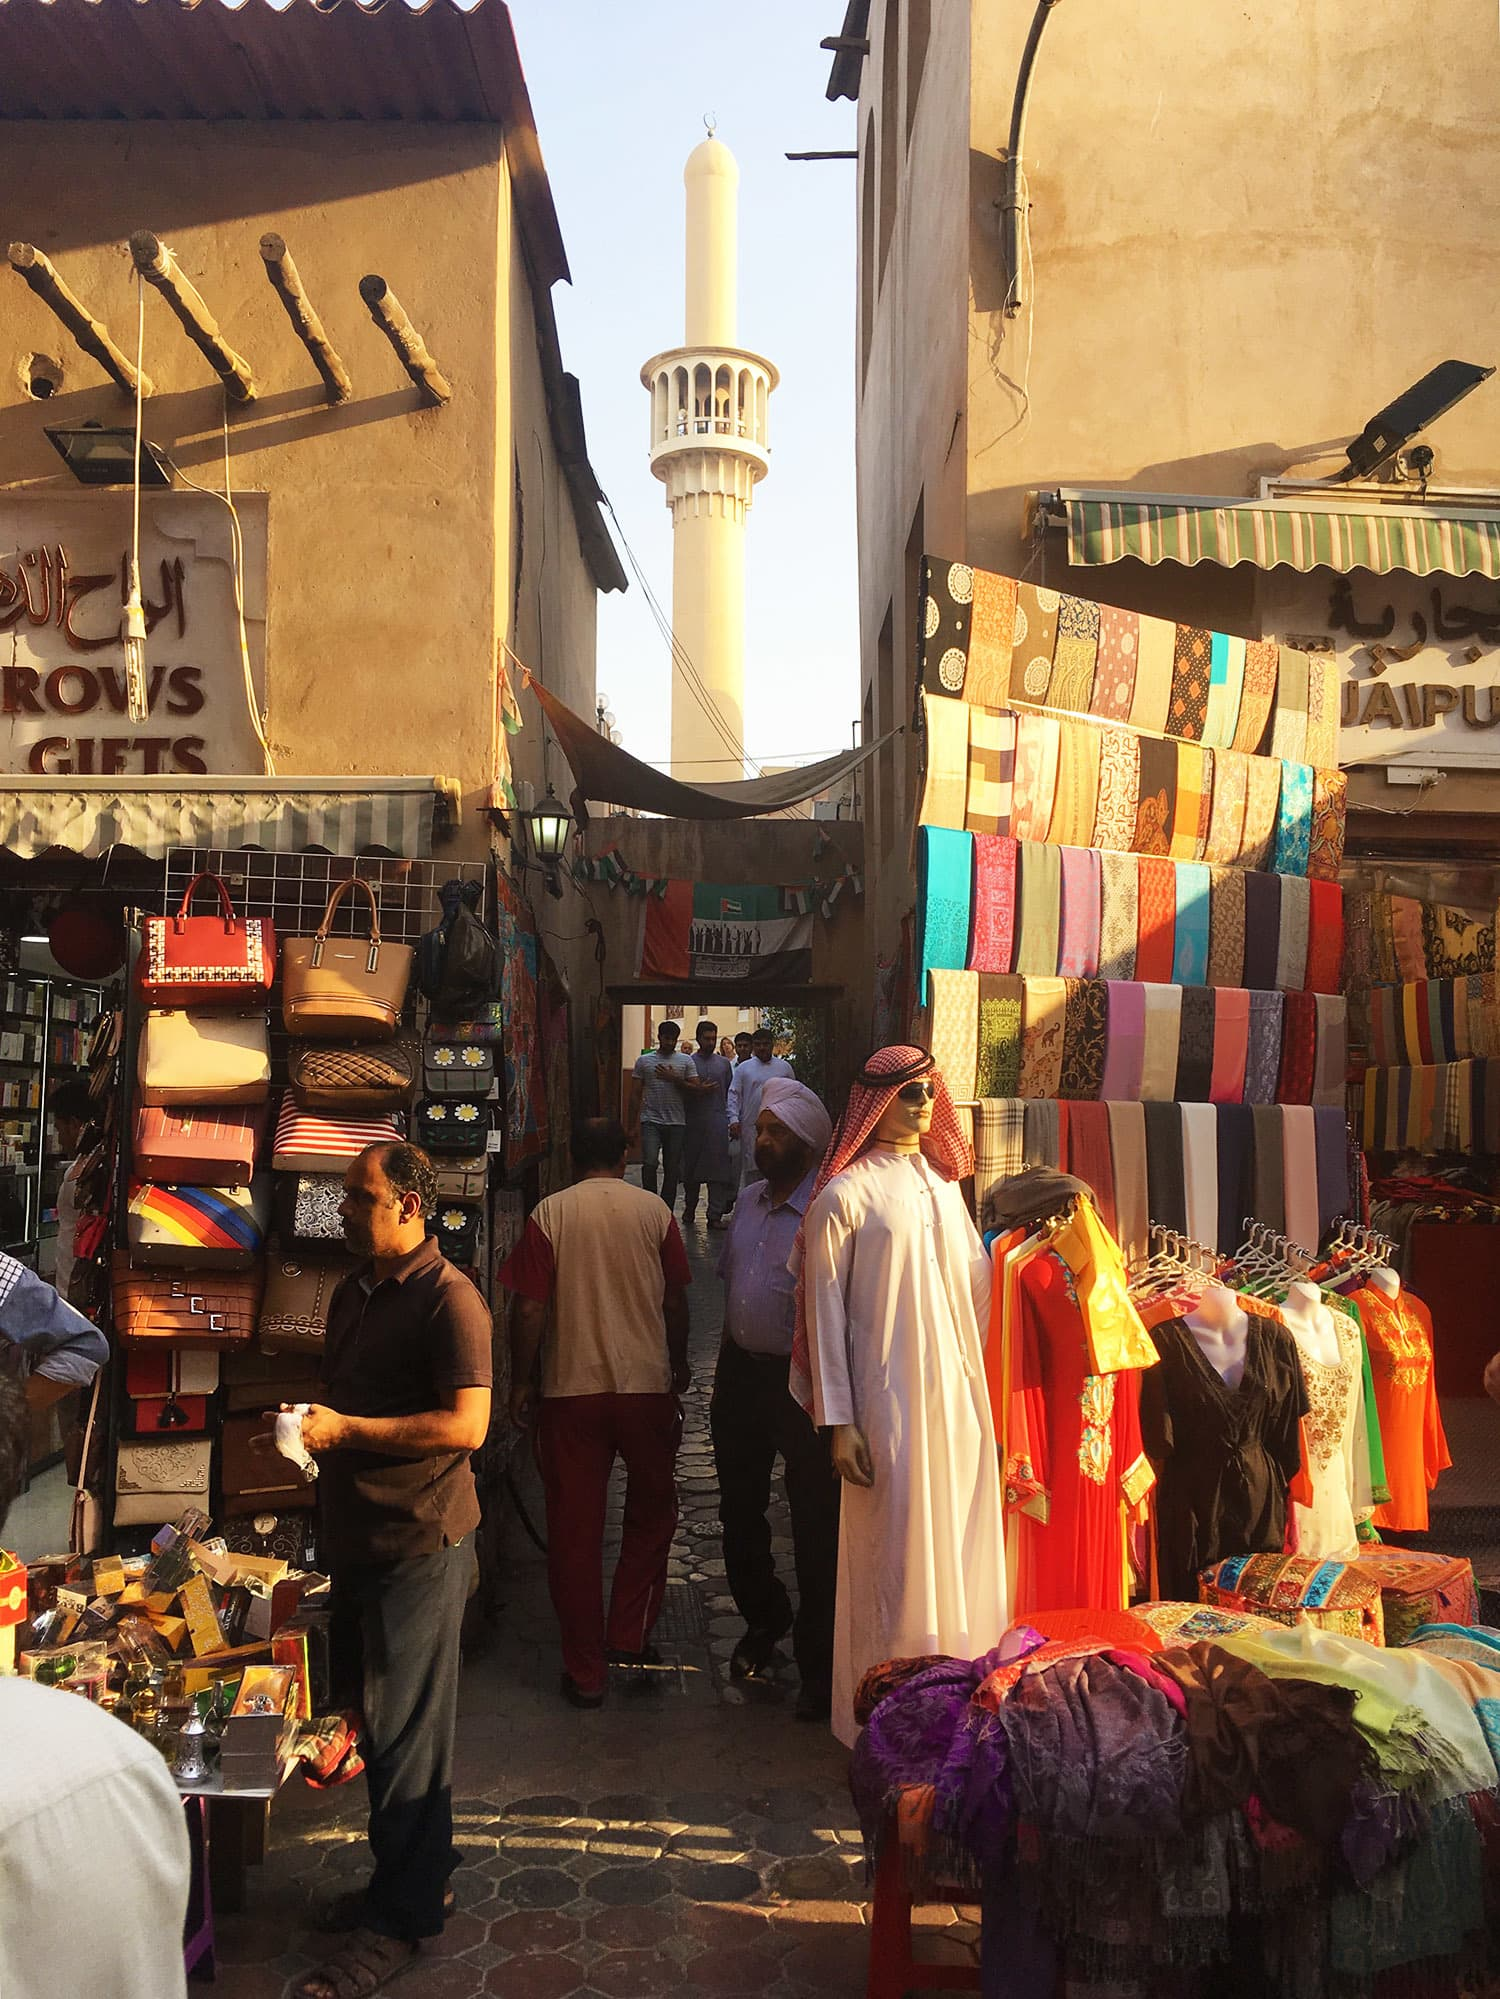 The busy shops selling various paraphernalia at the *souk*, which runs parallel to the Dubai Creek.